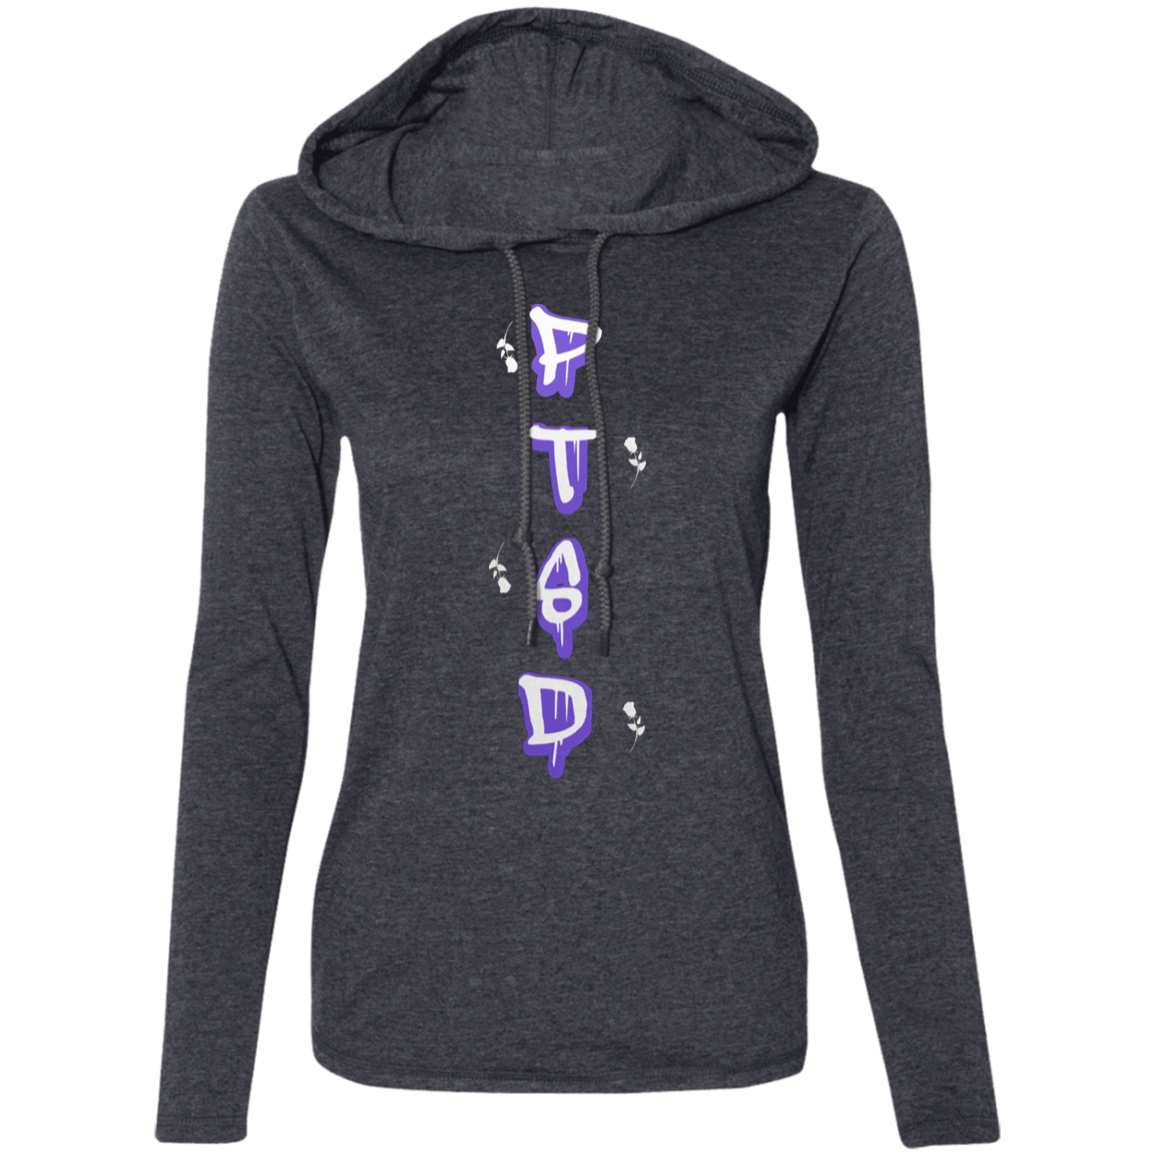 PTSD DOMESTIC VIOLENCE by Wisam Ladies' Long sleeve T-Shirt Hoodie